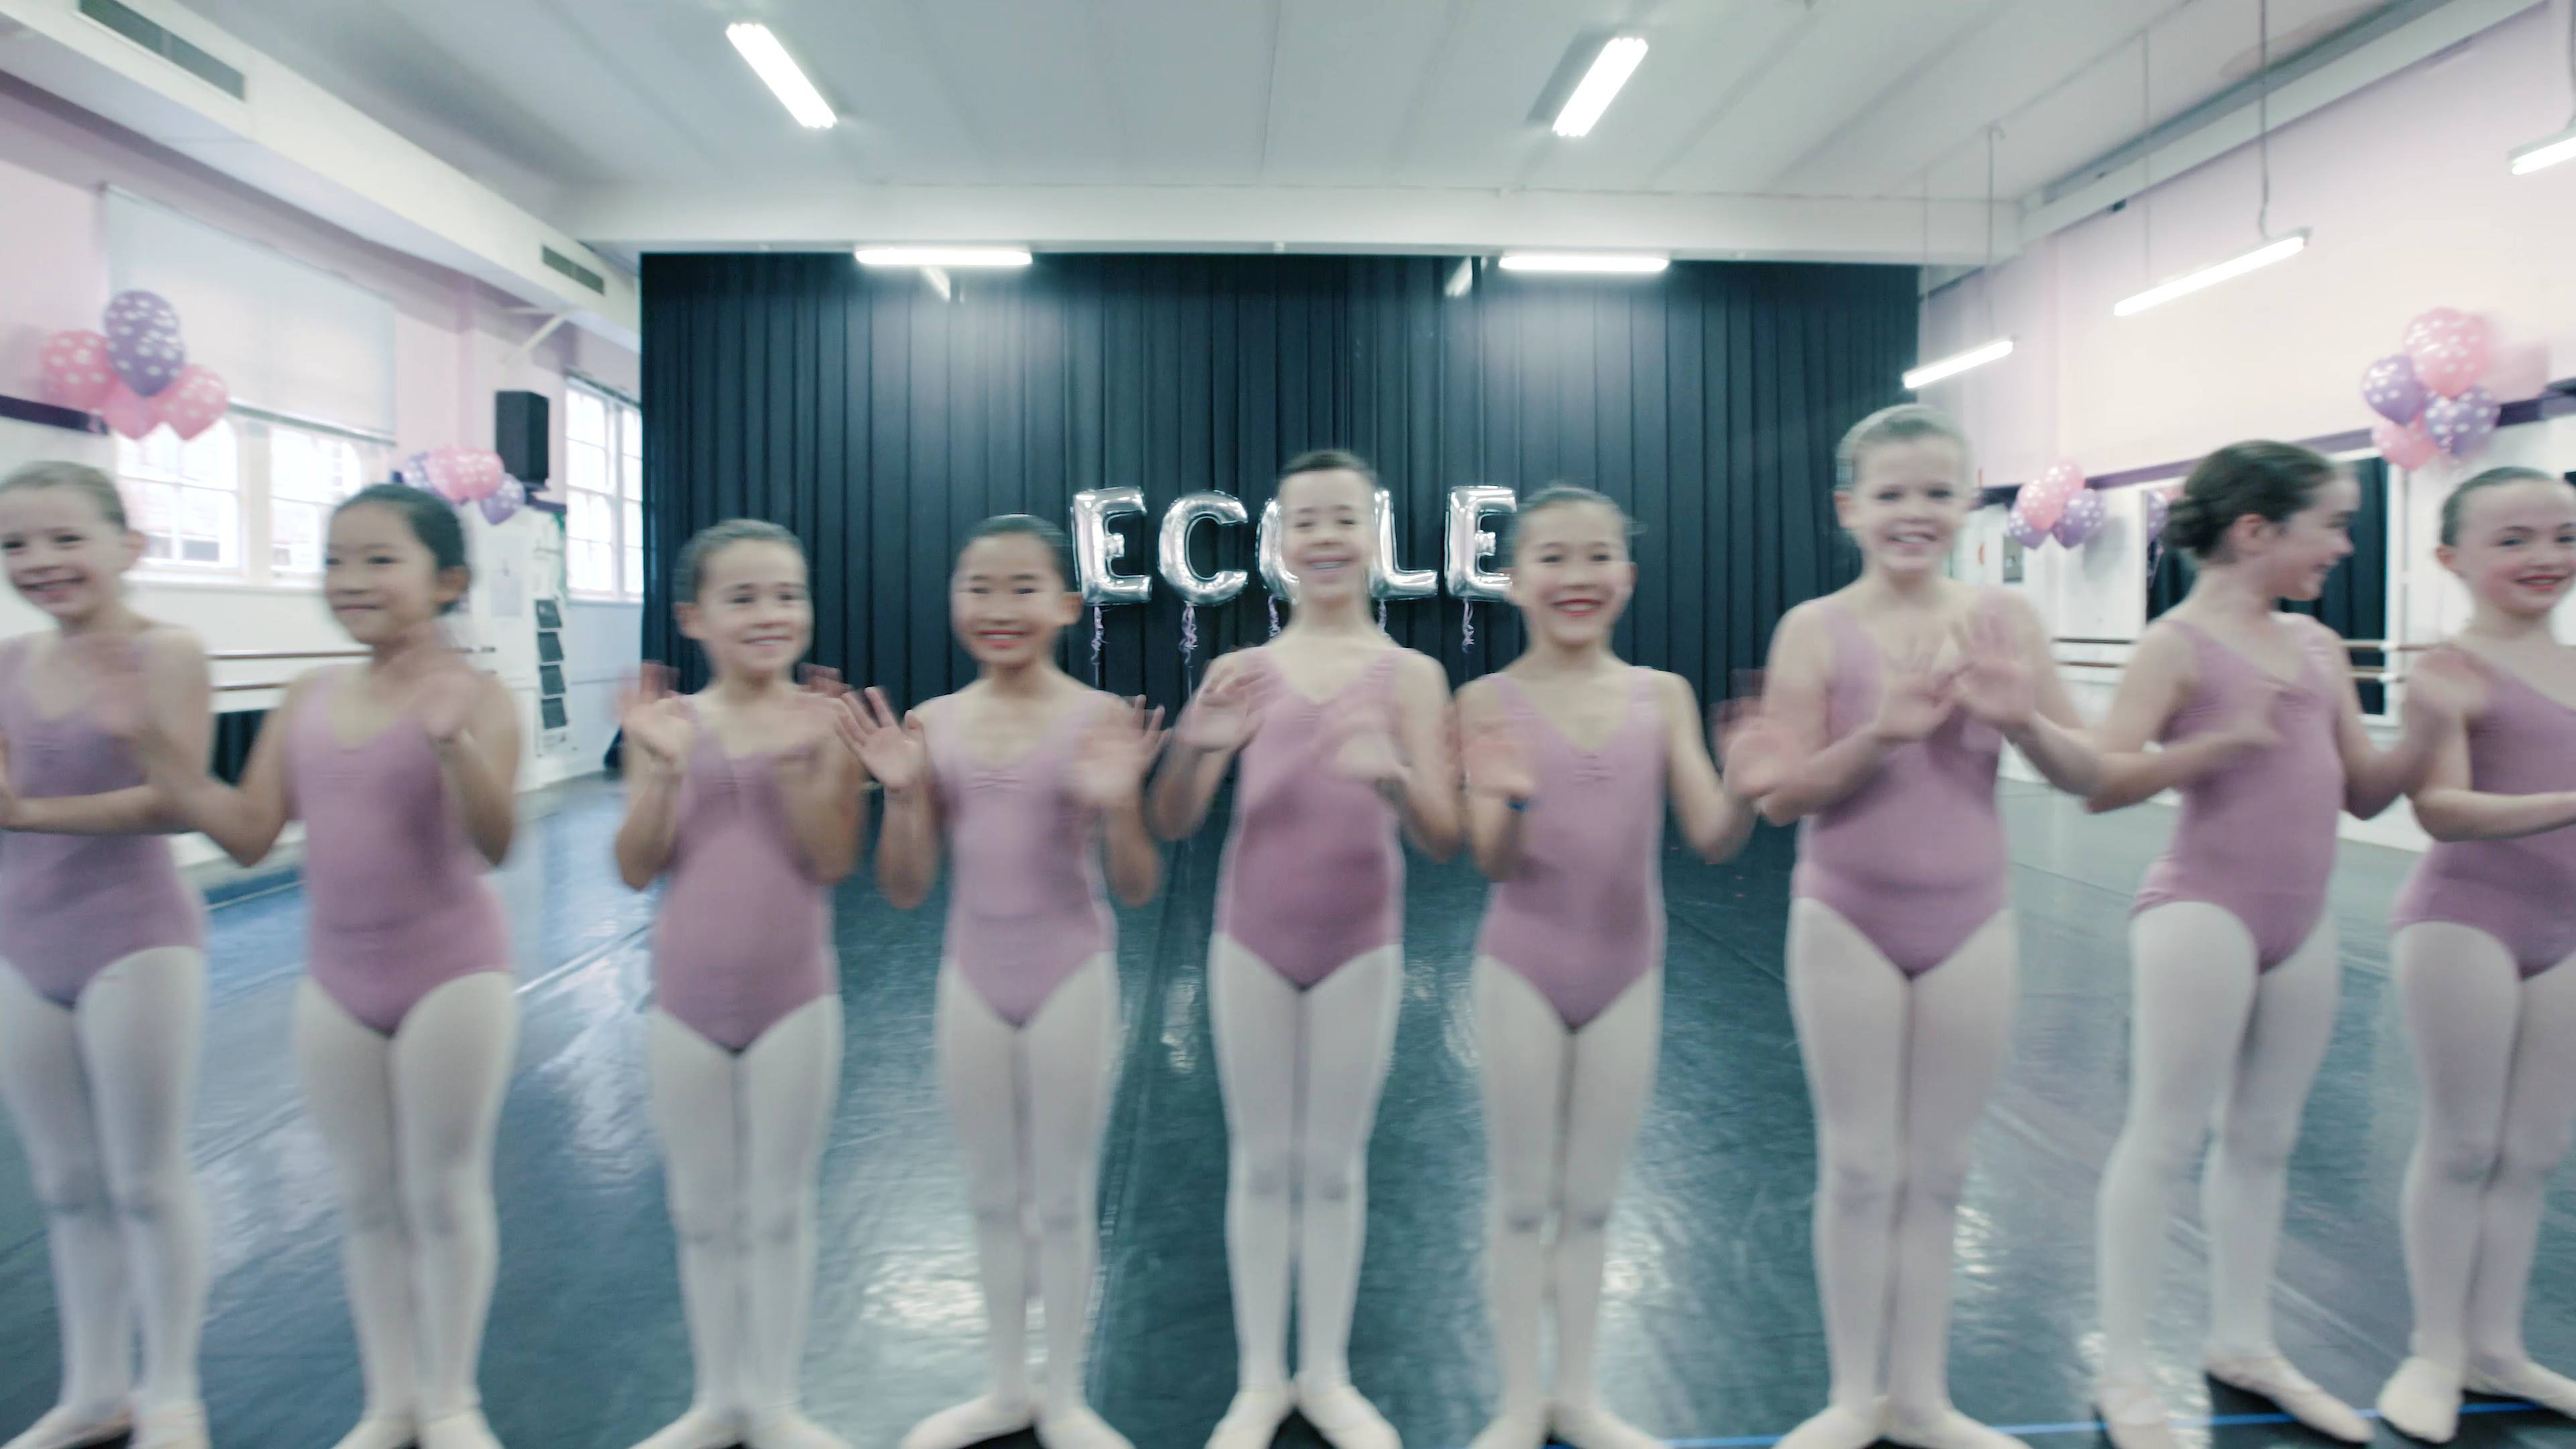 Ecole's 2017 Open Day